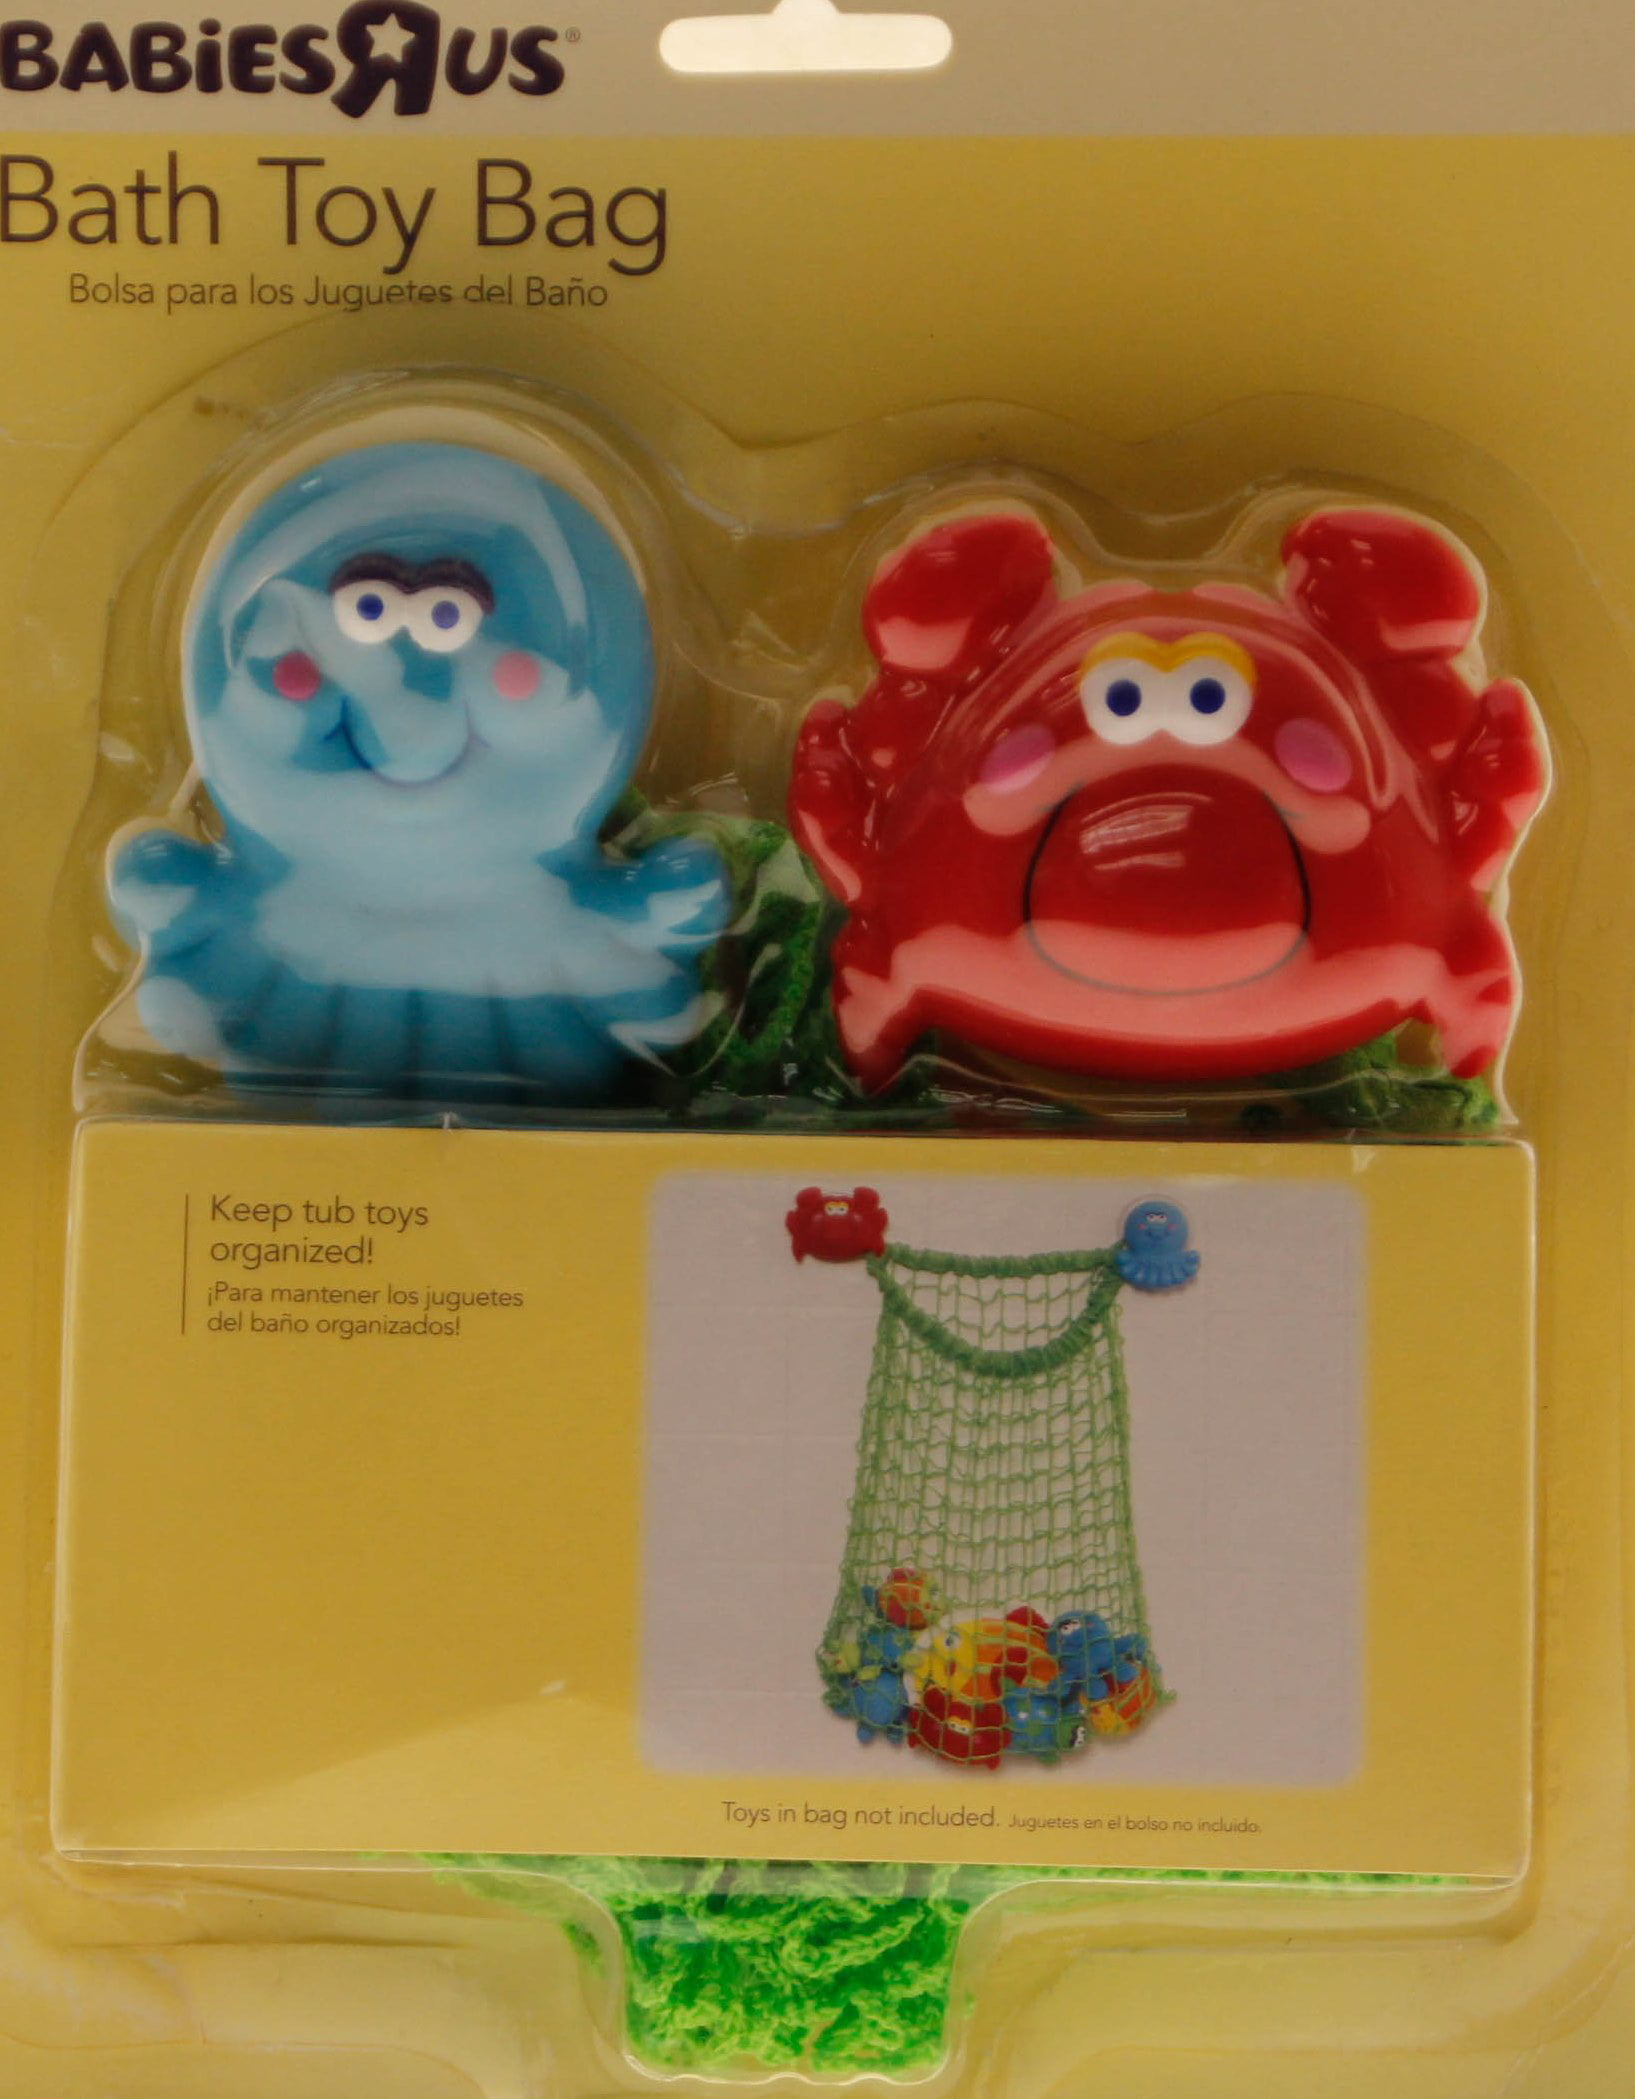 Babies R Us bath toy bag Keep tub toys organized - NEW - Walmart.com